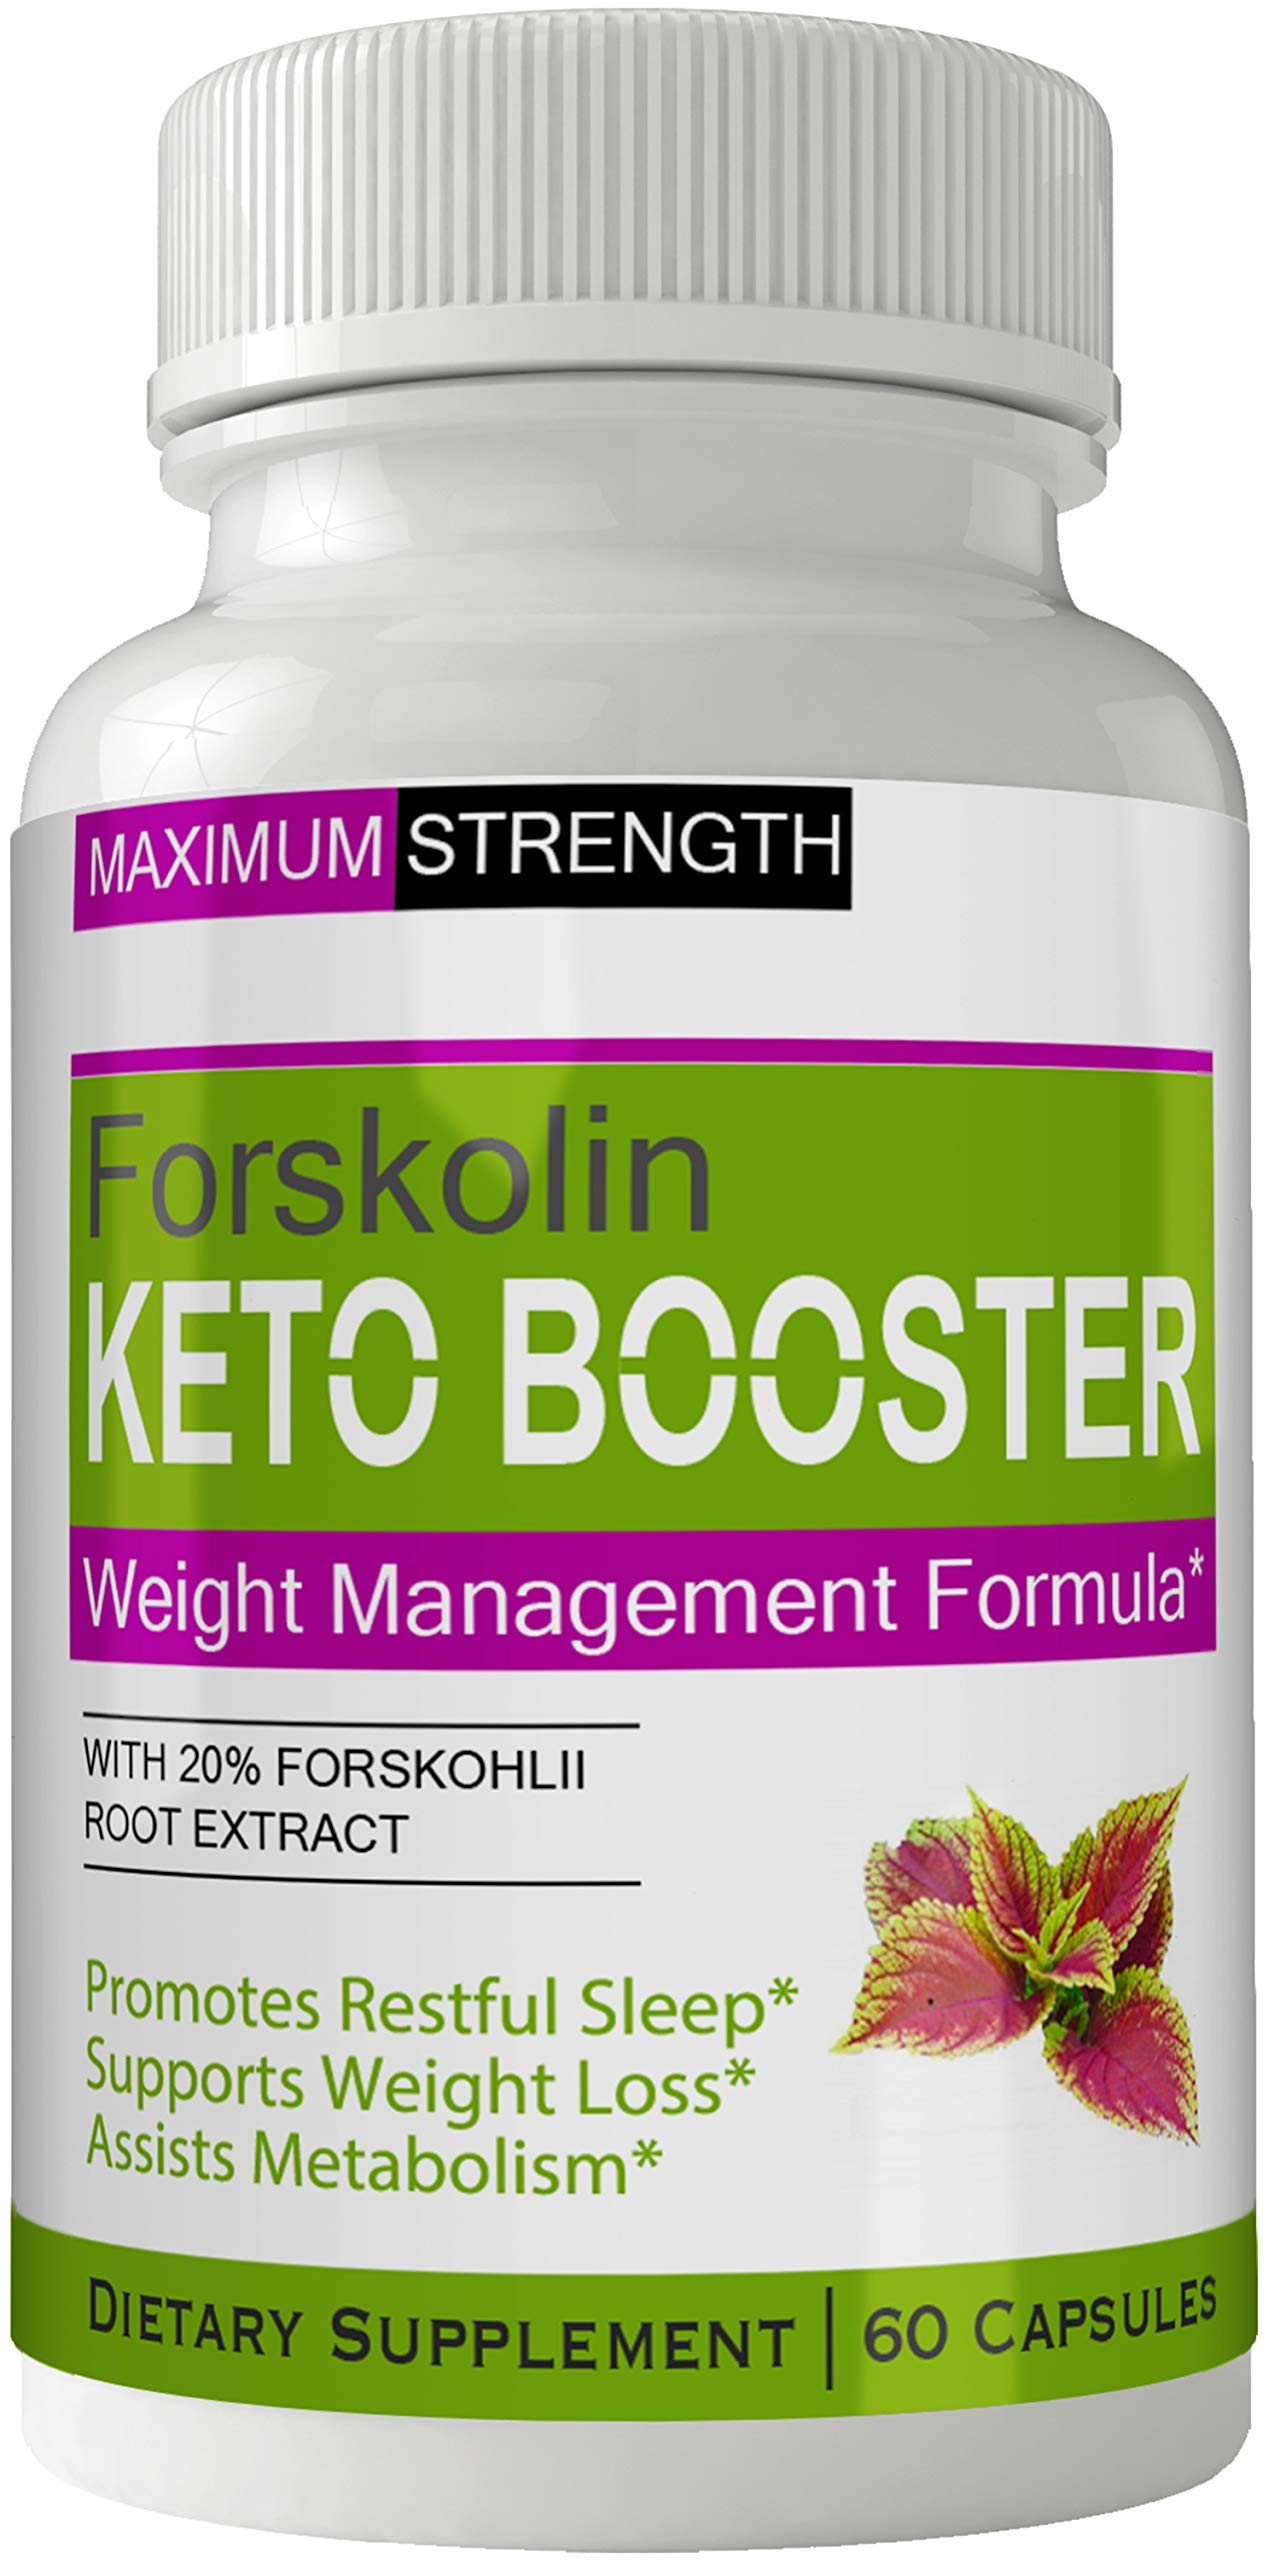 Keto Boost Forskolin for Weight Loss Pills Tablets Supplement - Capsules with Natural High Quality Pure Forskolin Extract Diet Pills